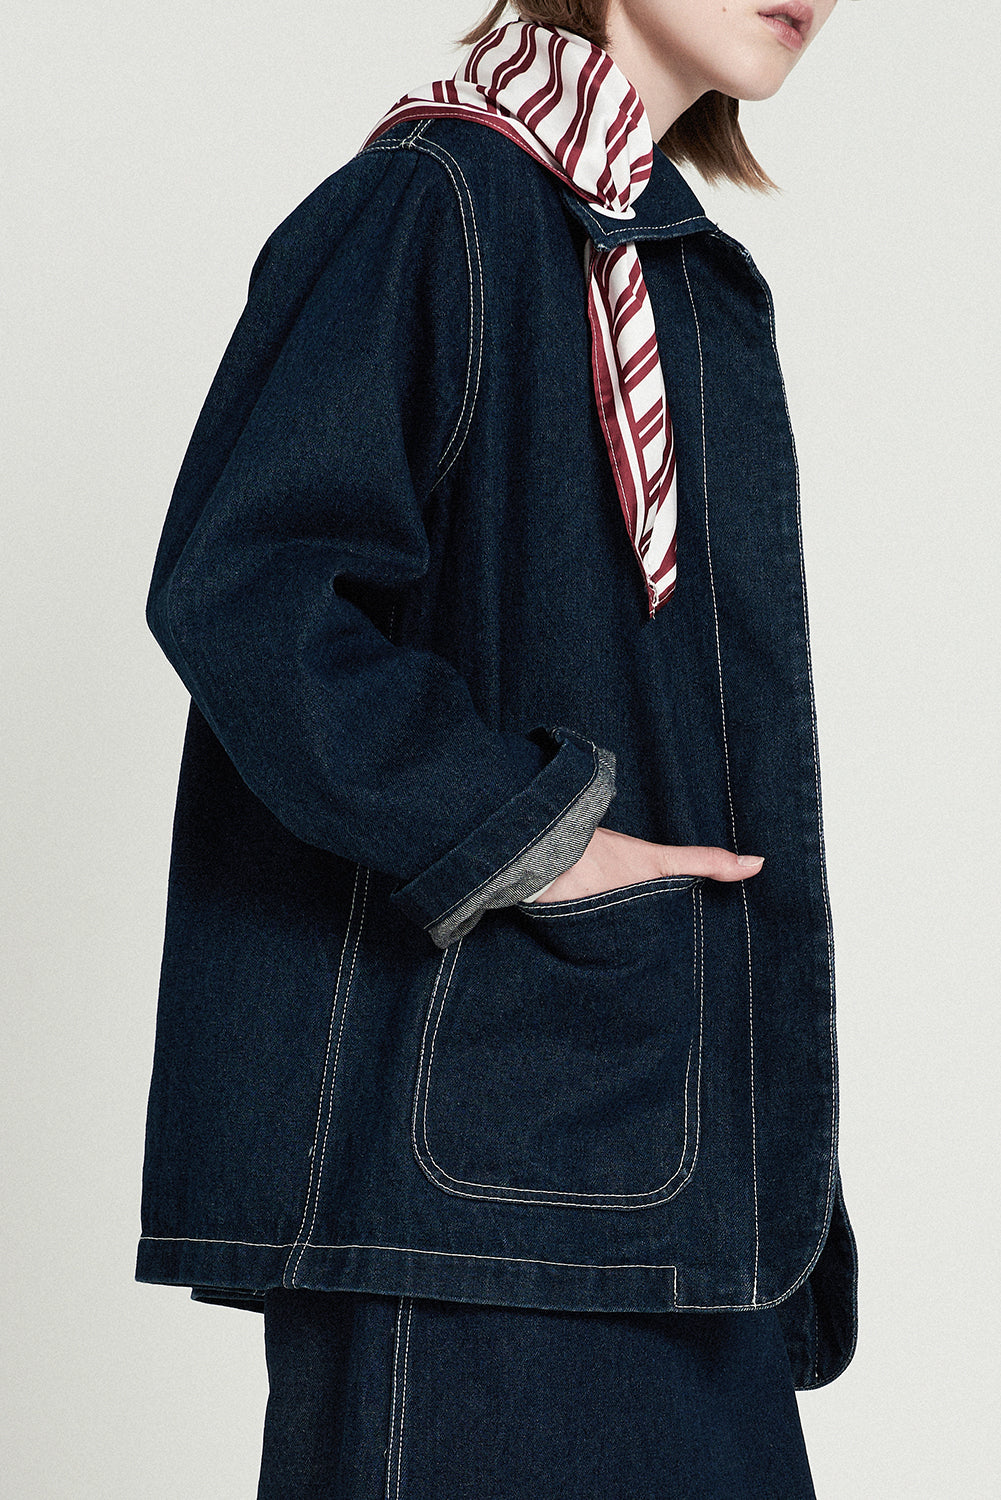 Denim Jacket With Removable Red Stripe Scarf - front row shop